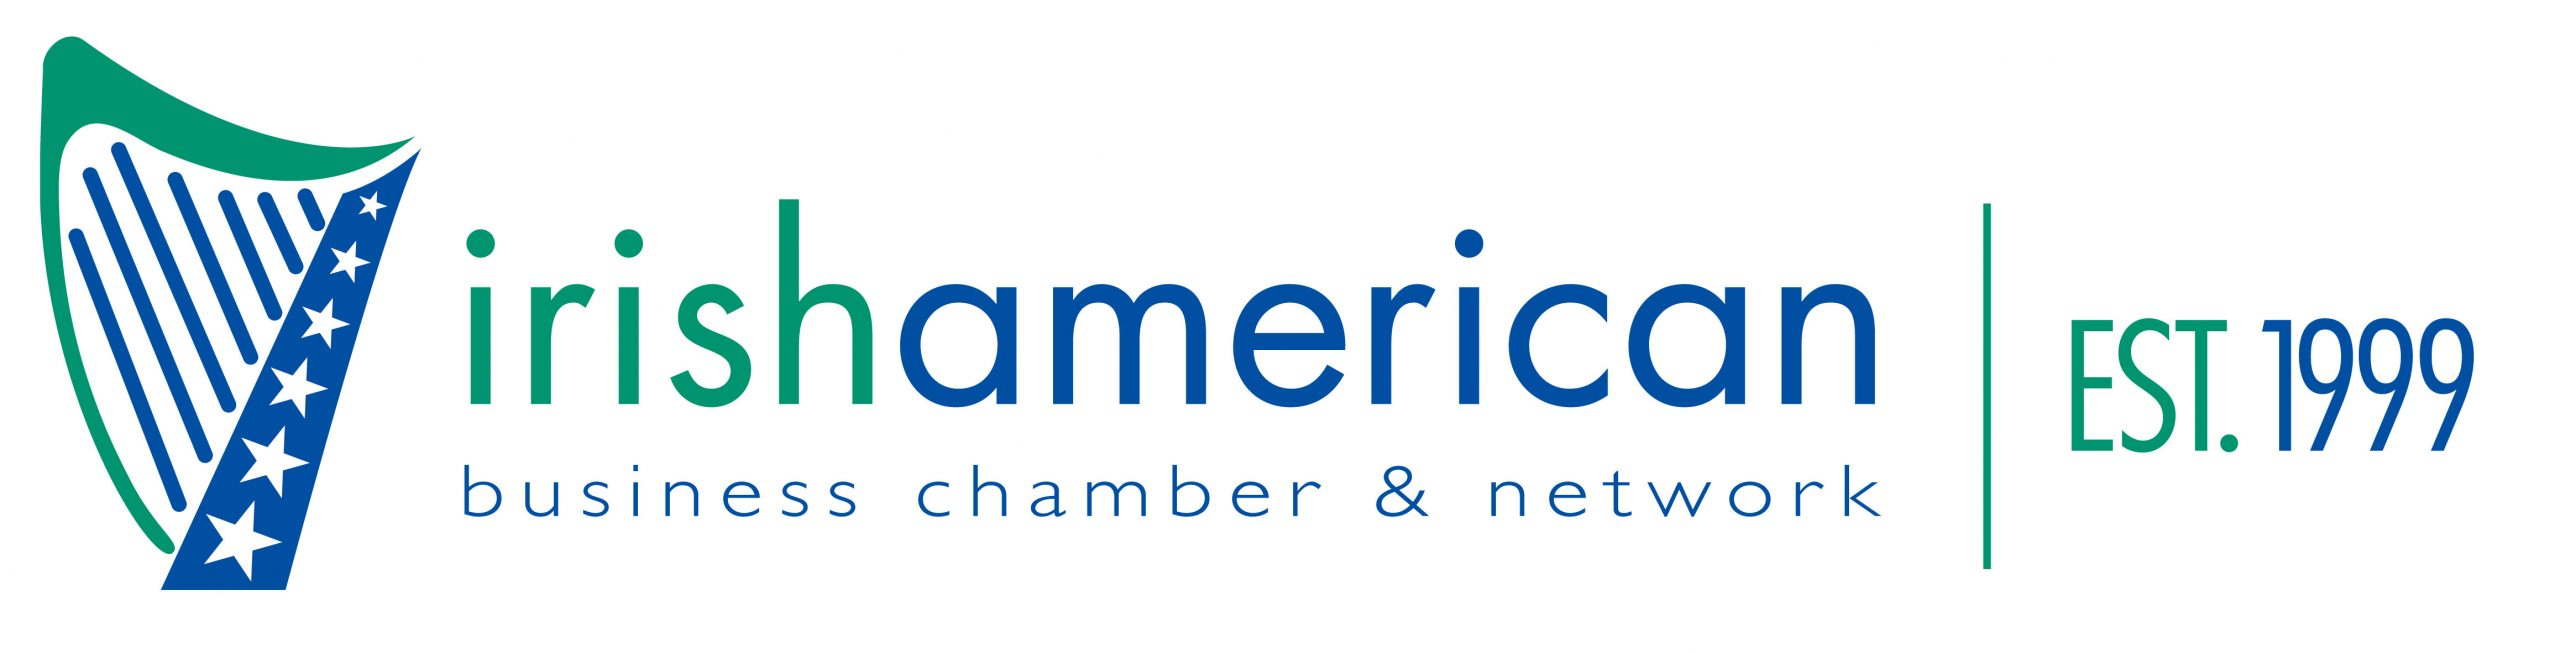 Irish American Business Chamber & Network logo